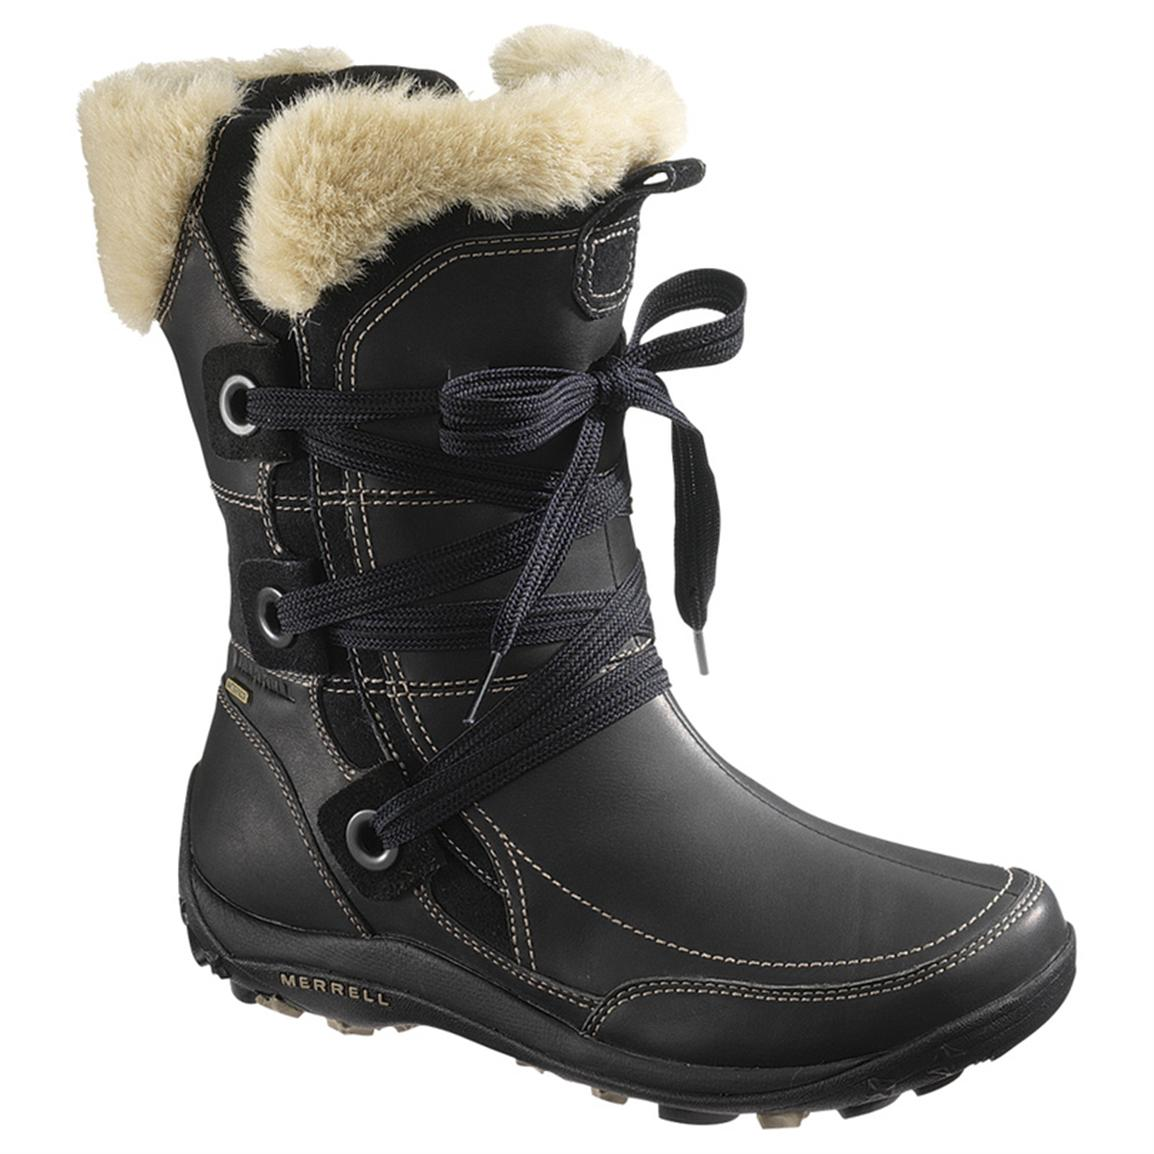 Waterproof Snow Boots Women I14jBYGw